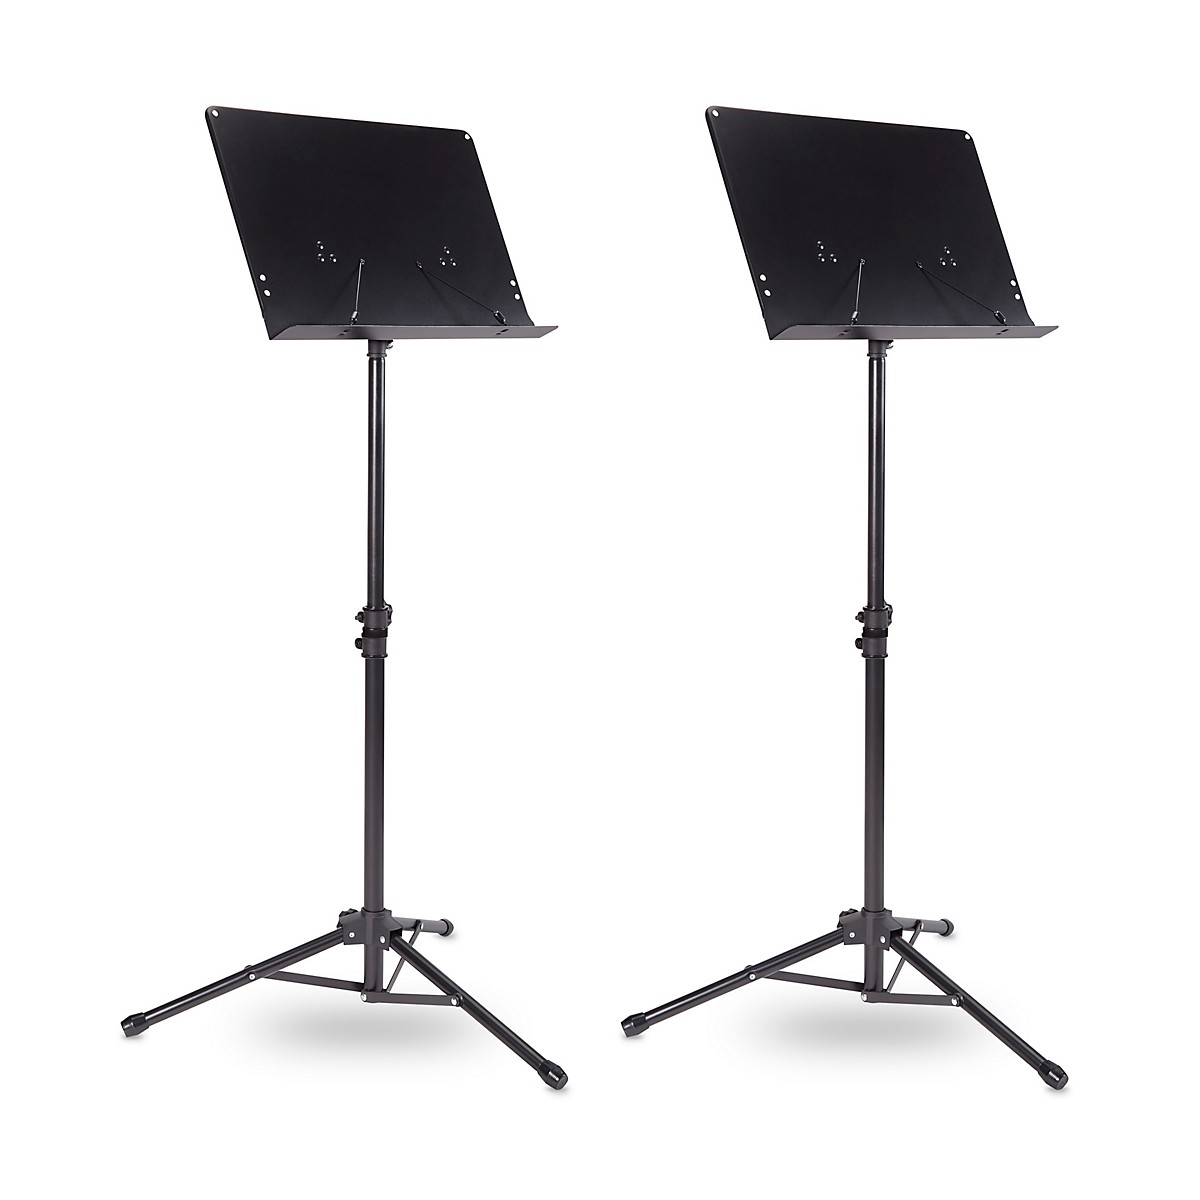 Musician's Gear Tripod Orchestral Music Stand Regular Black - 2 Pack